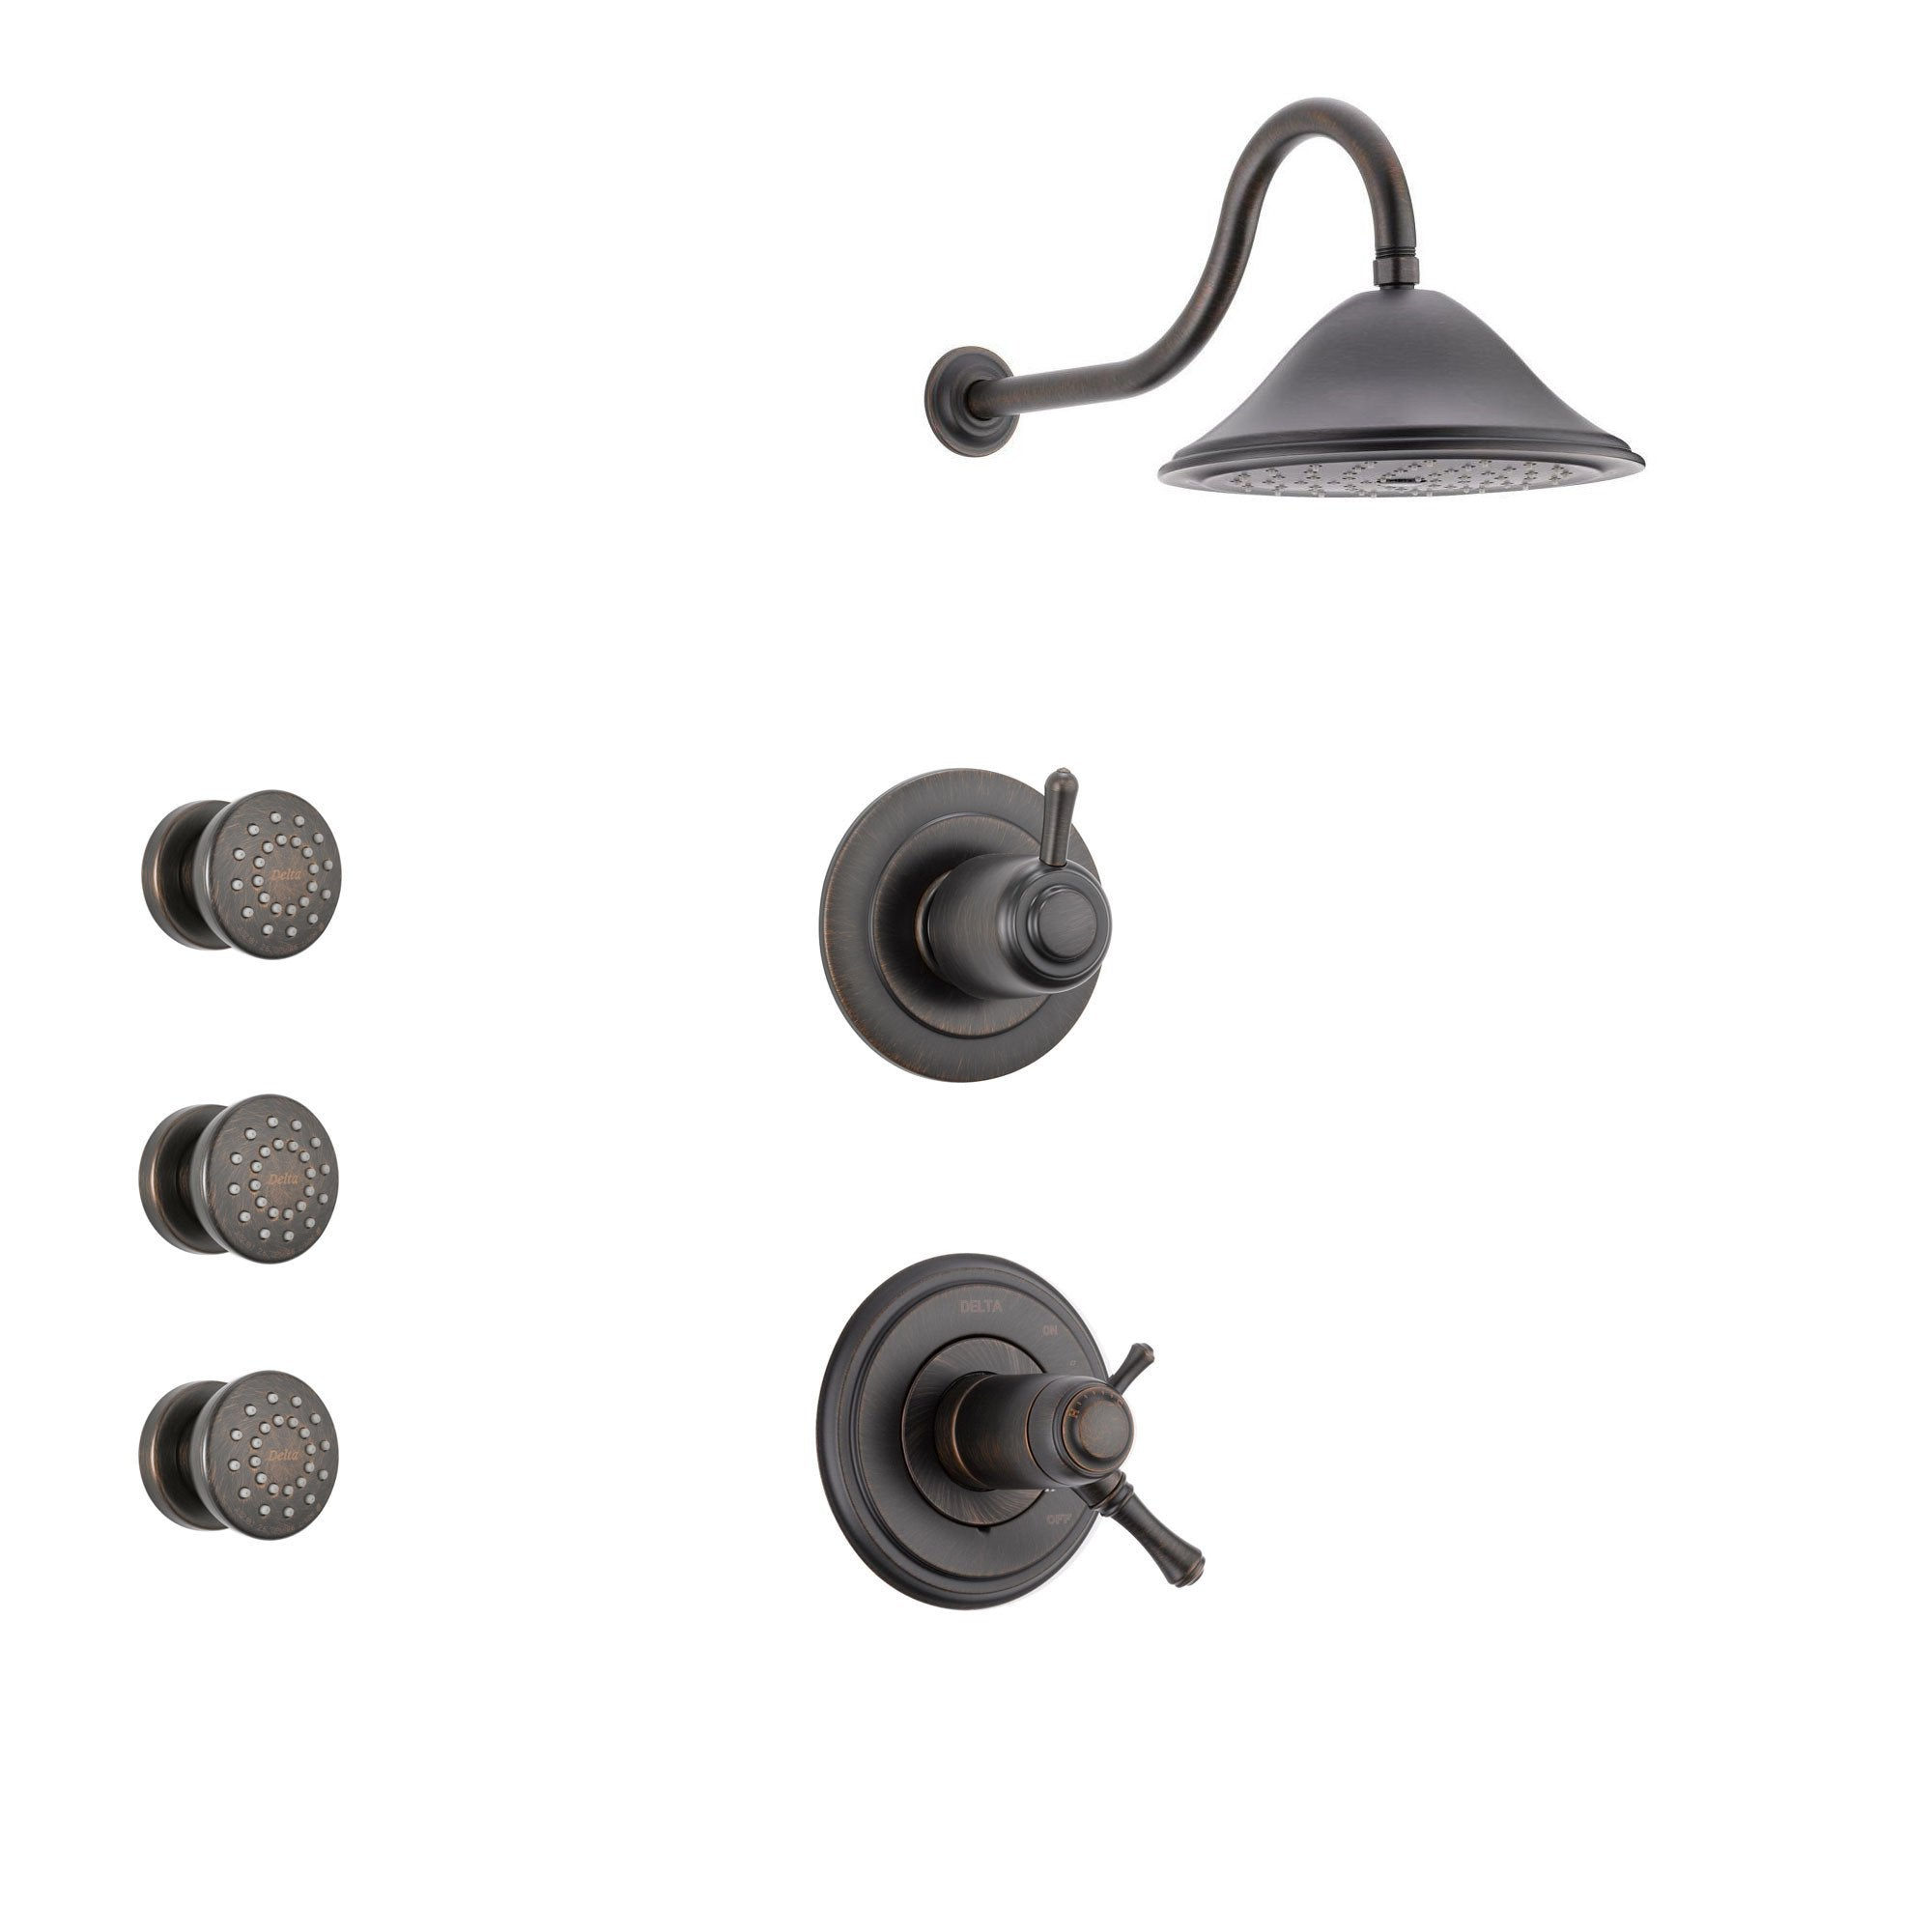 Delta Cassidy Venetian Bronze Shower System with Thermostatic Shower Handle, 3-setting Diverter, Large Rain Showerhead, and 3 Body Sprays SS17T9781RB